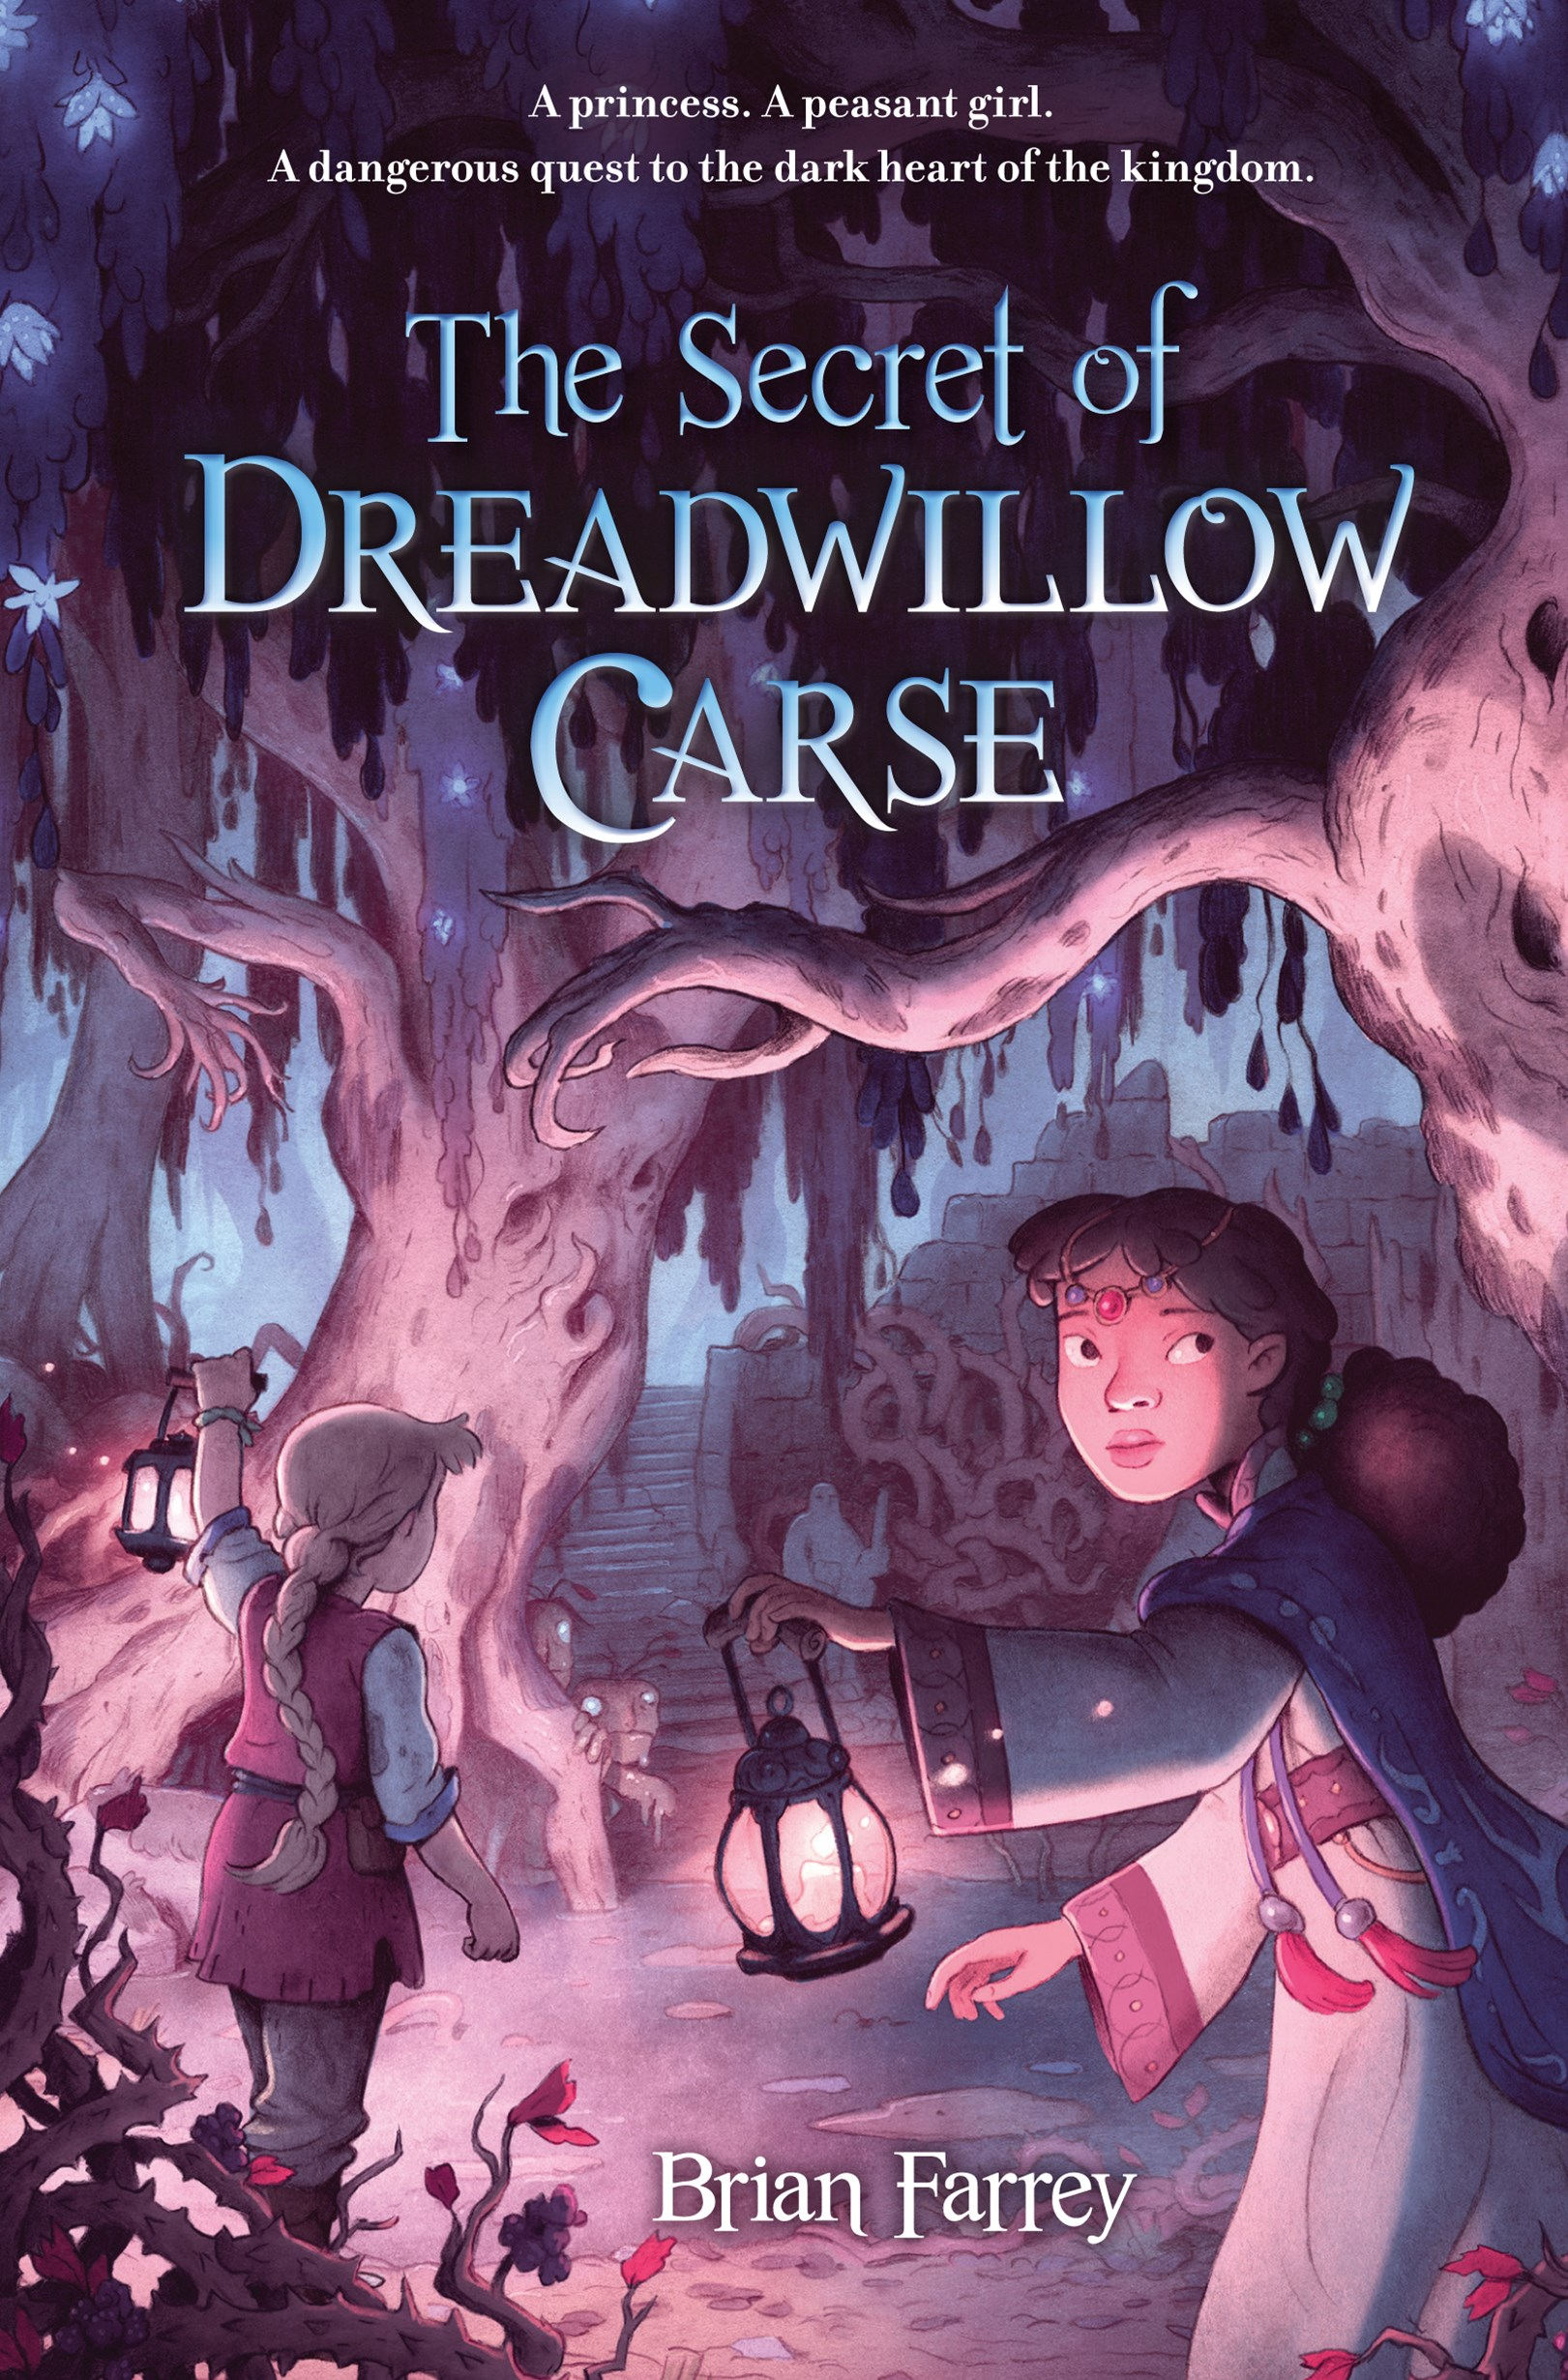 Secret of Dreadwillow Carse, The